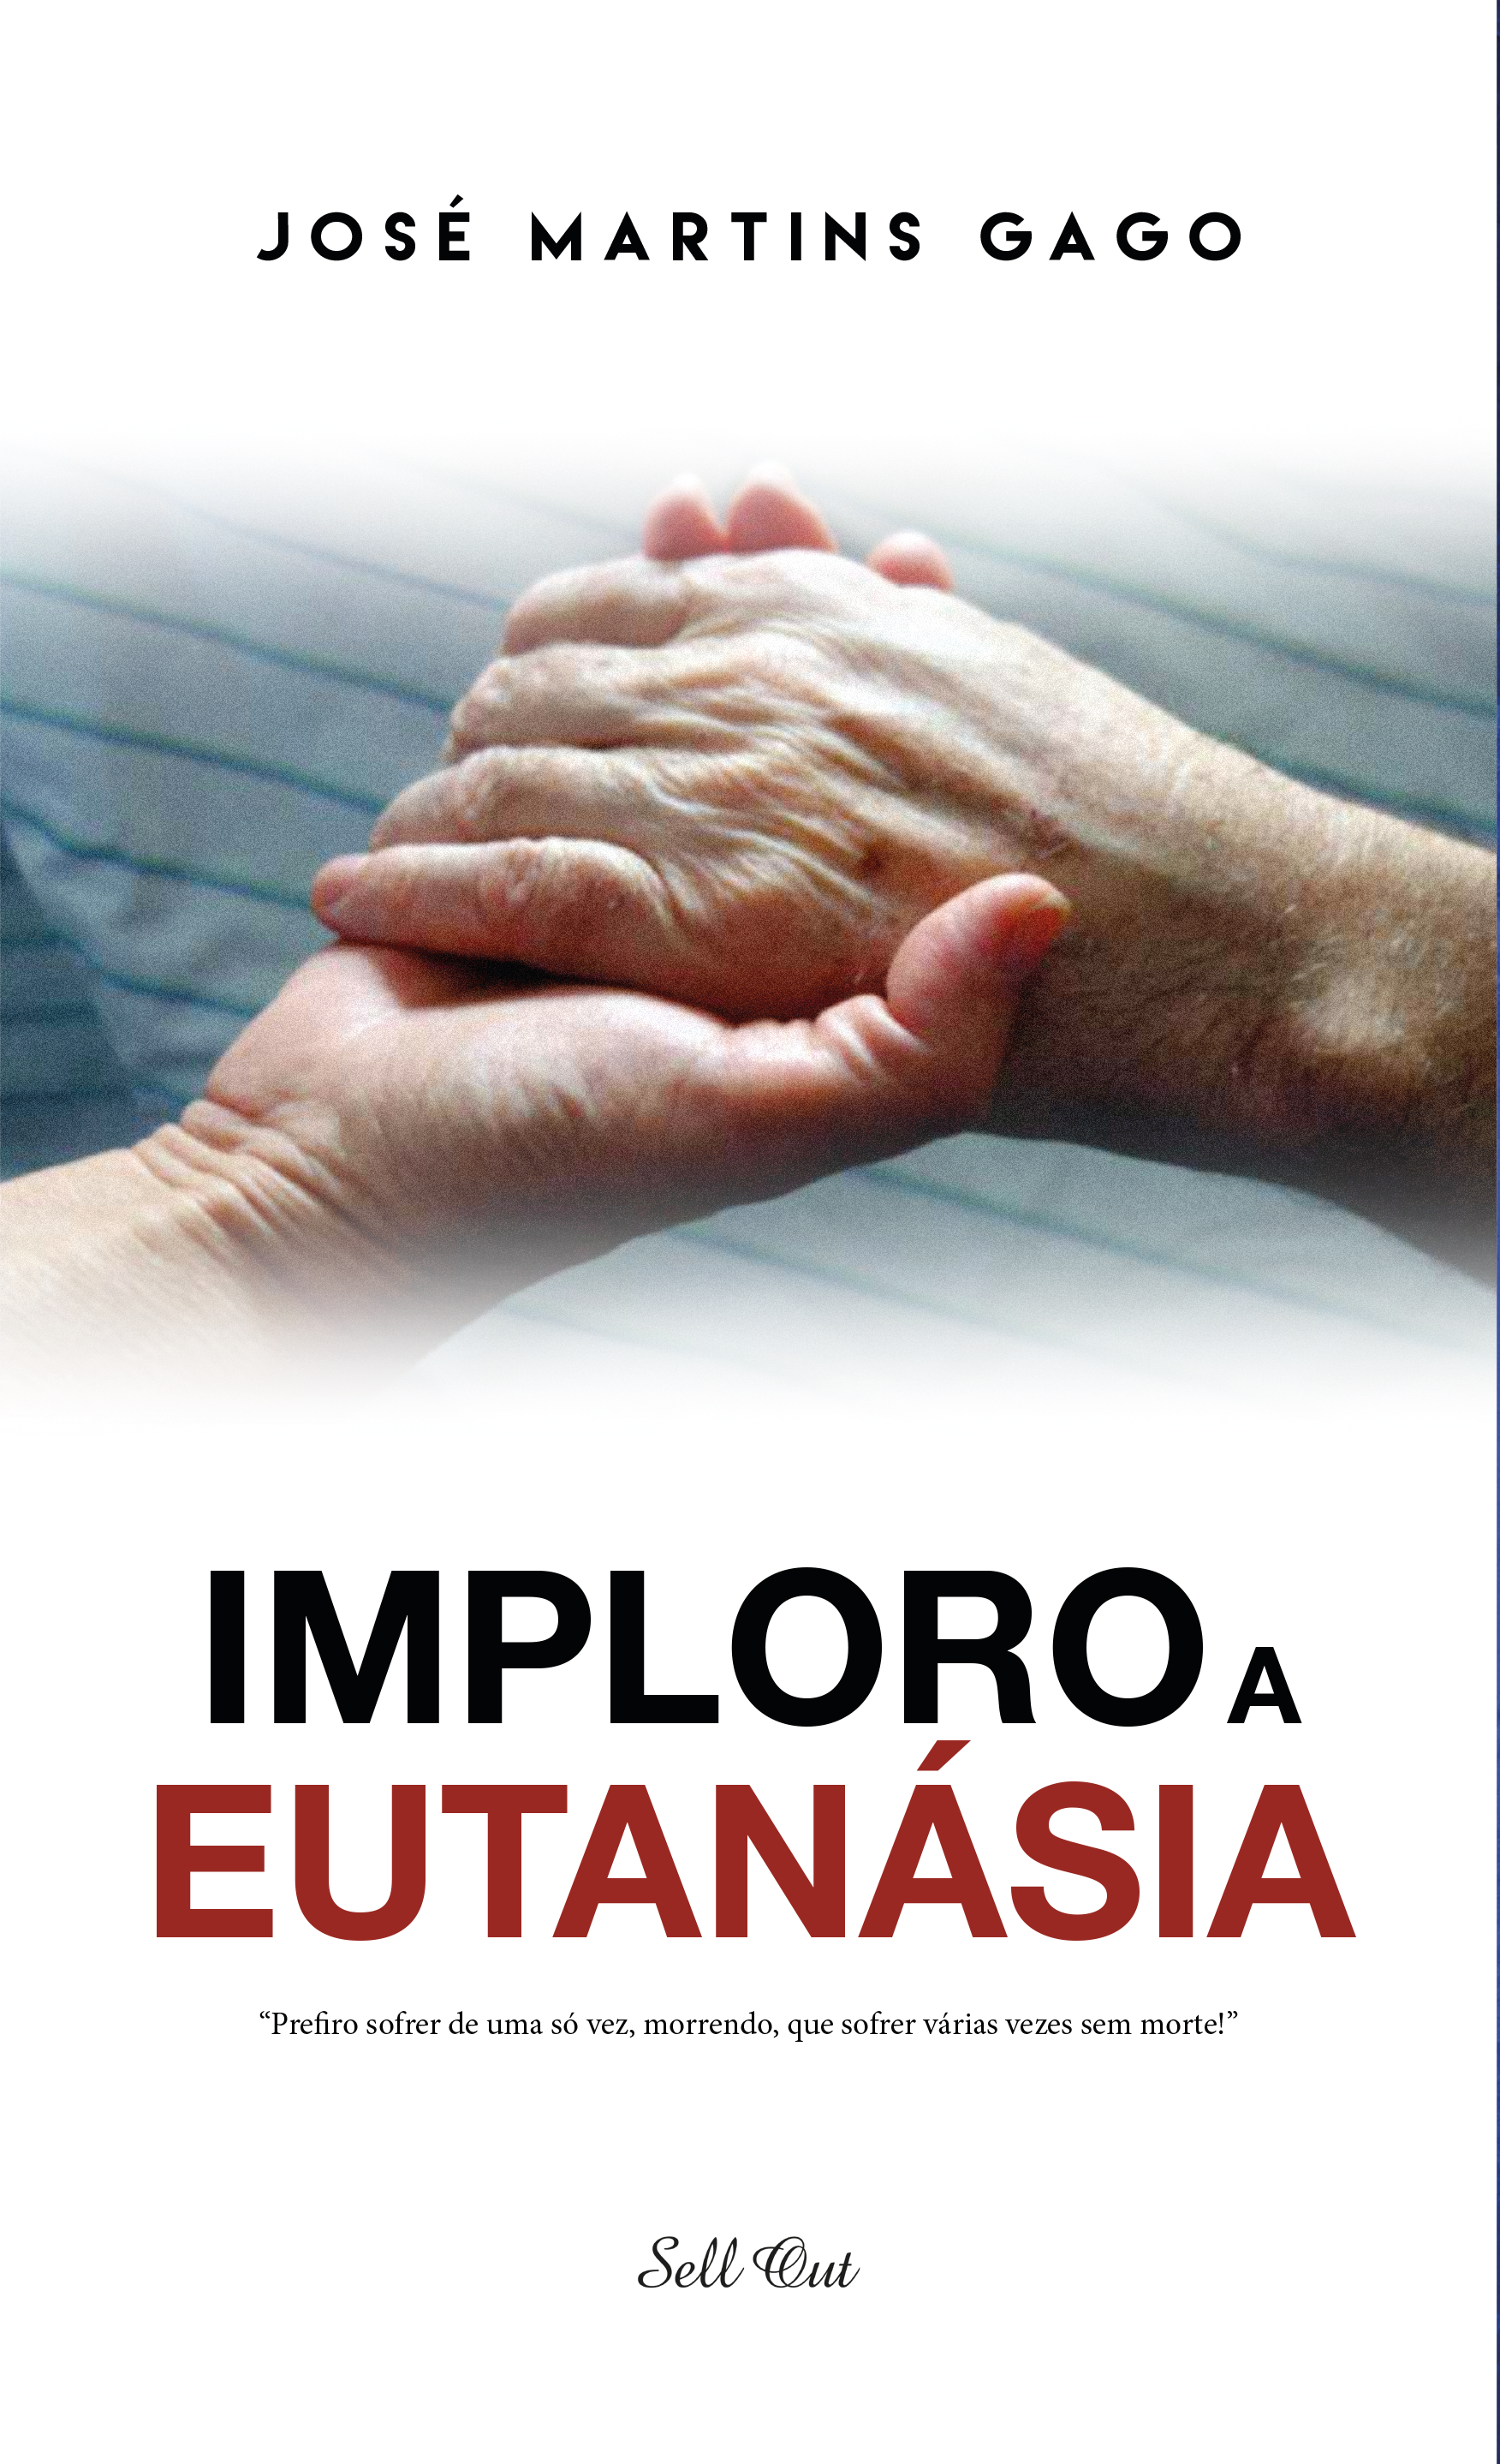 https://bo.gruponarrativa.pt/fileuploads/CATALOGO/Ficção/Romance/_gruponarrativa_imploroaeutanasia_josemartinsgago.png